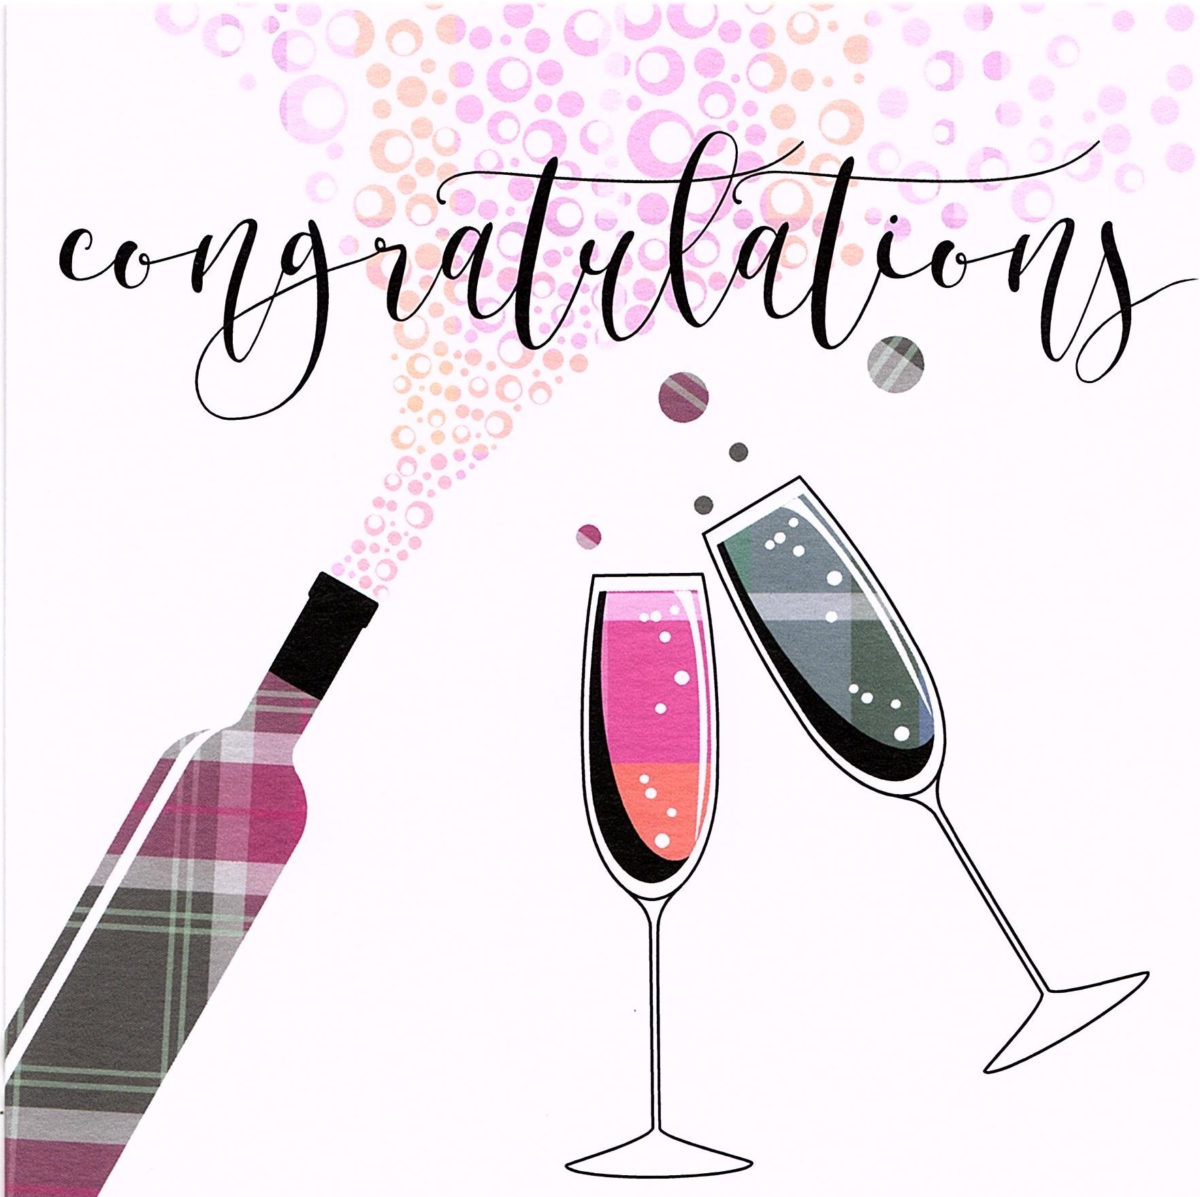 Congratulations Bubbly